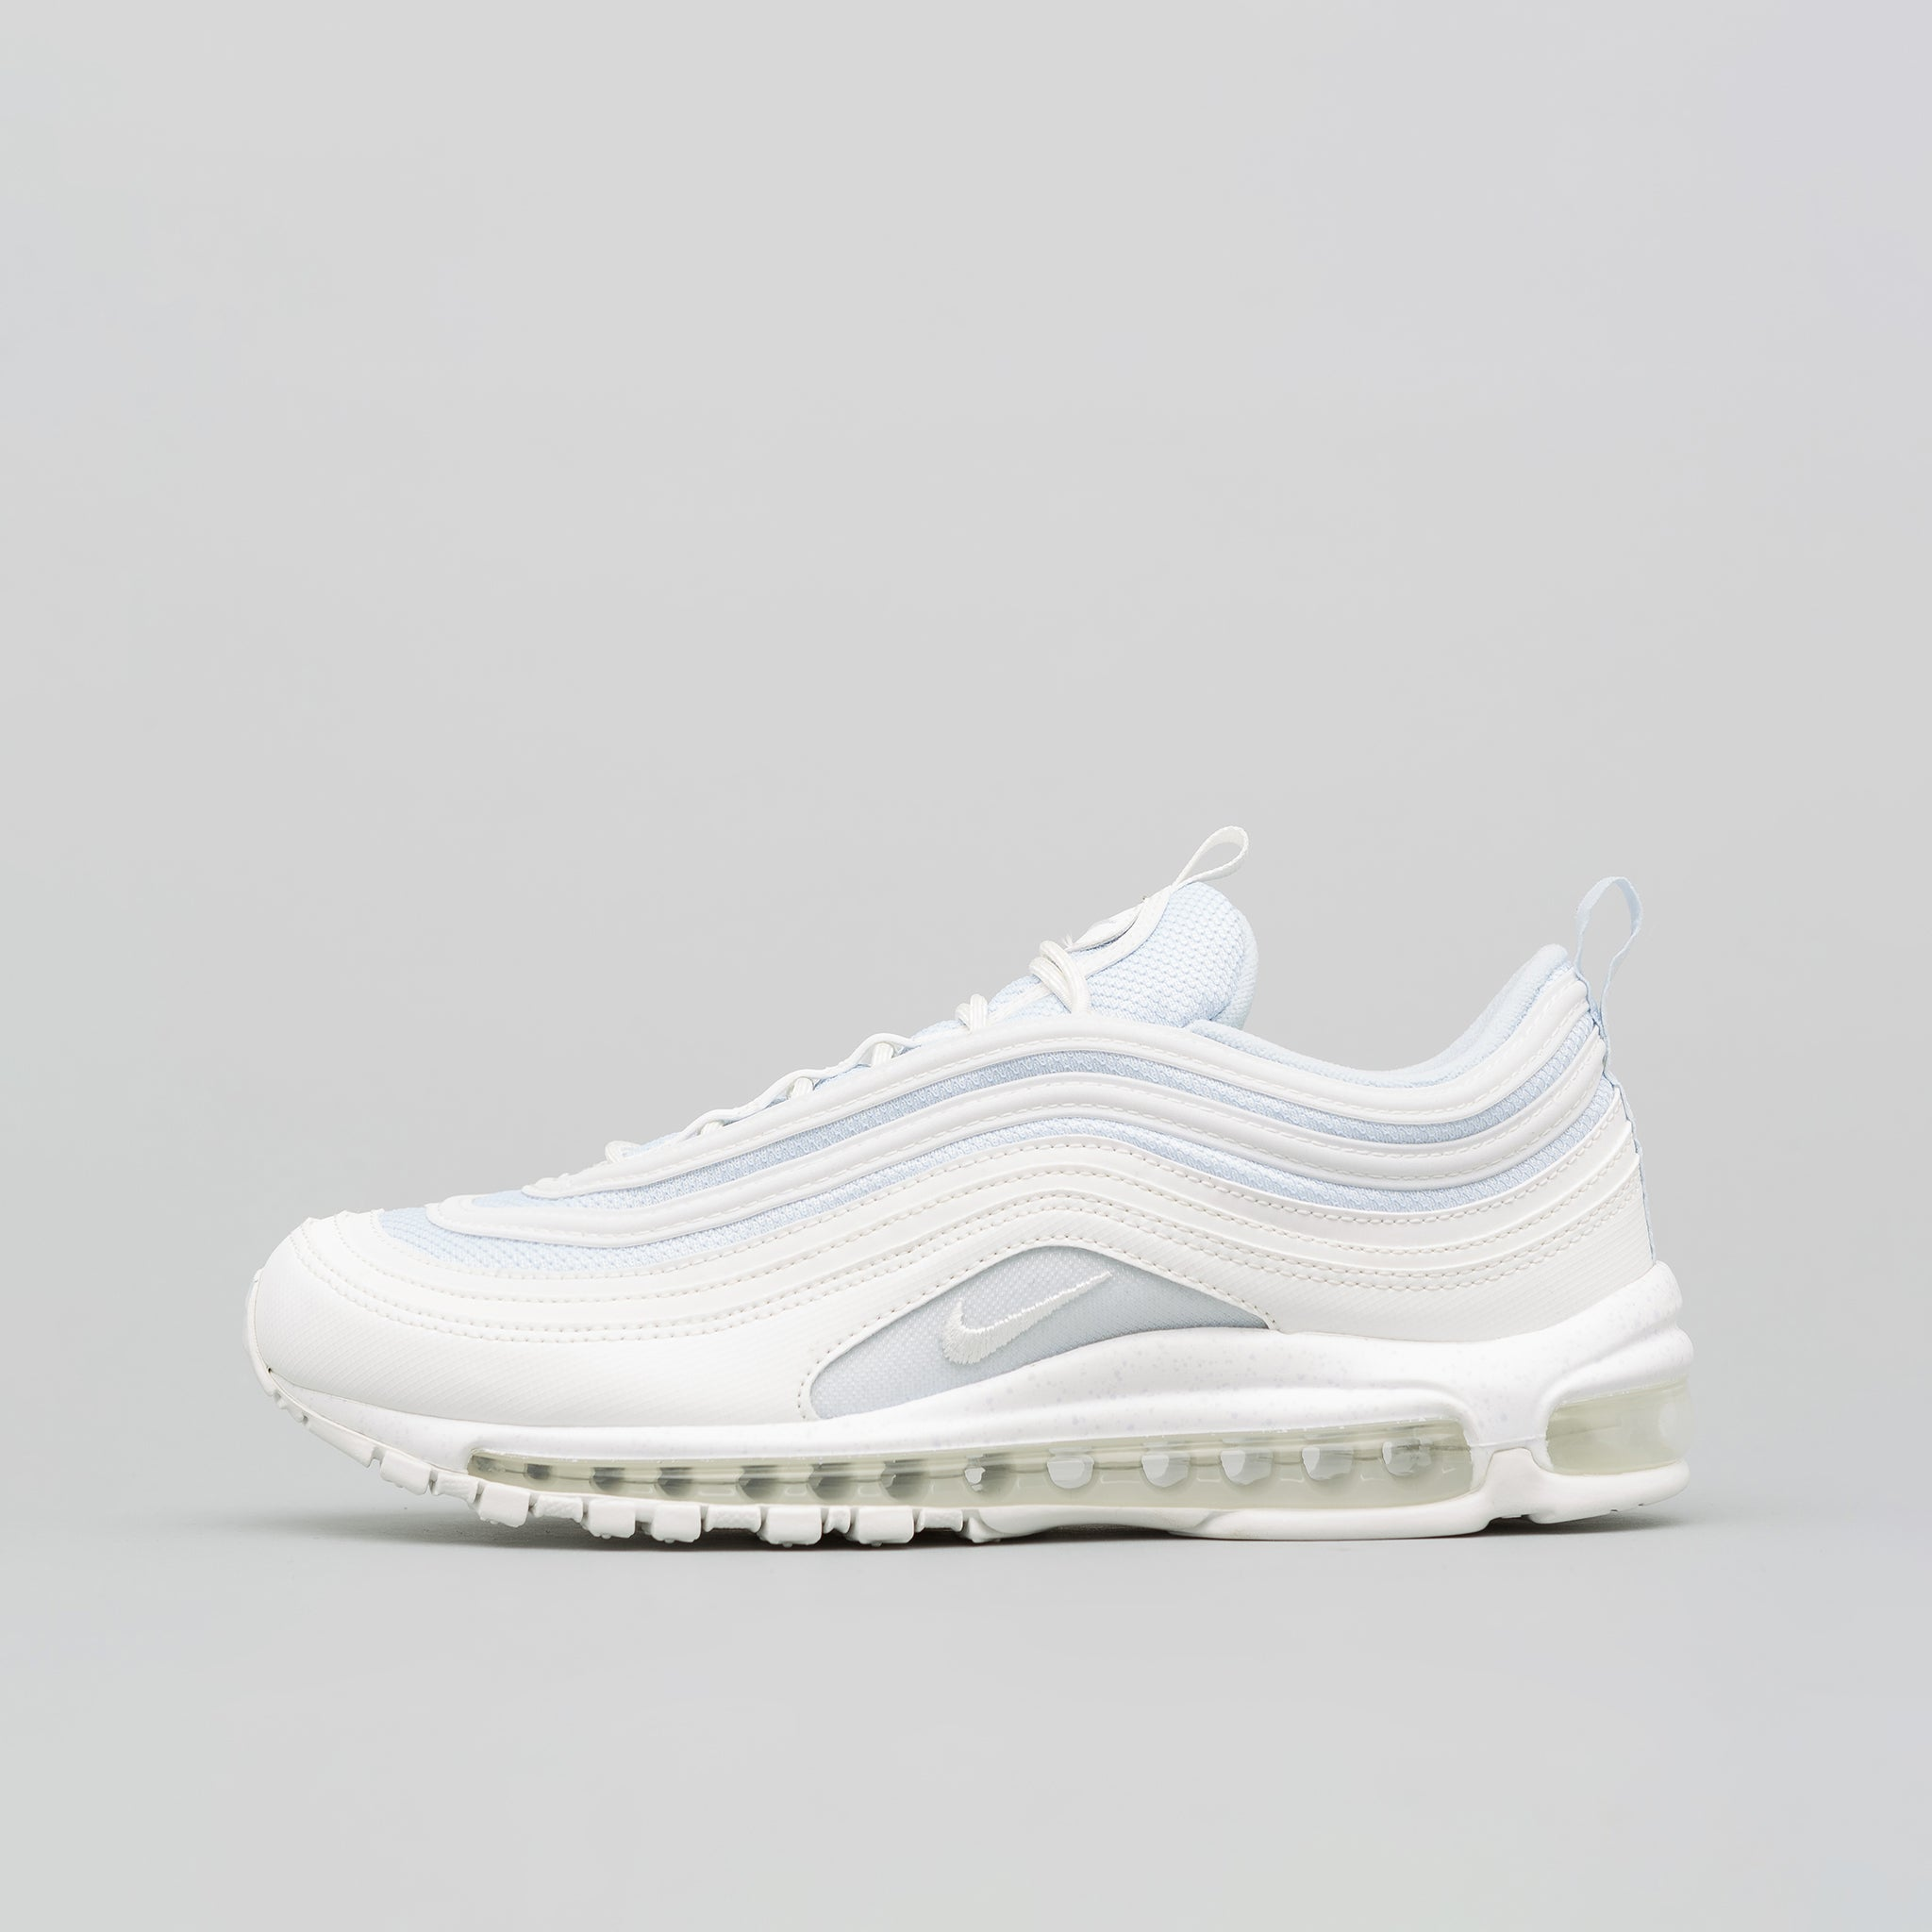 Air Max 97 in Summit White